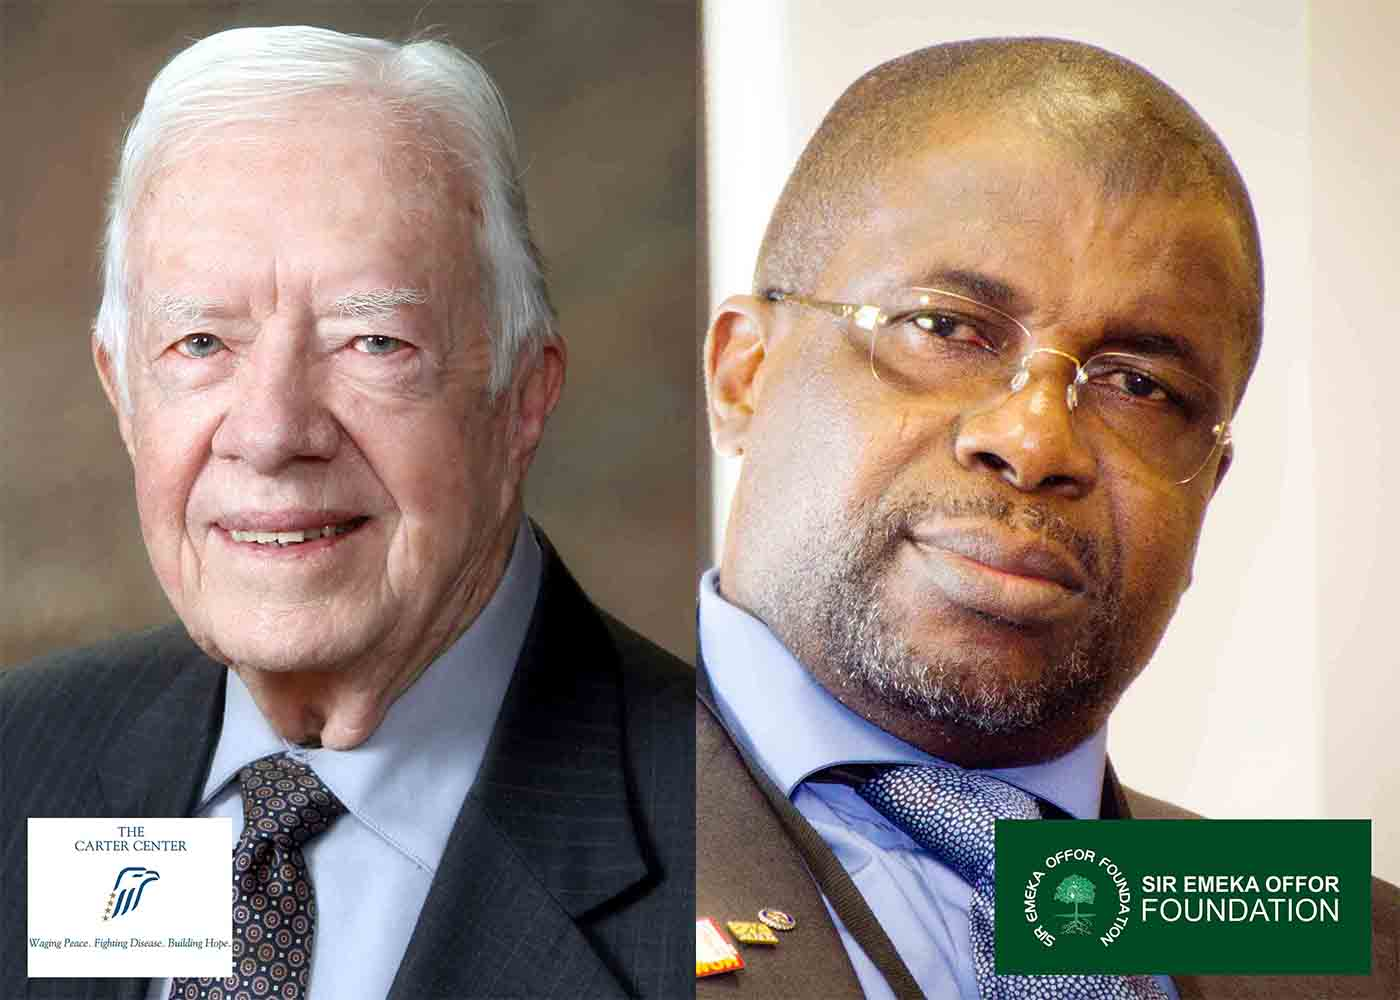 President Jimmy Carter and Sir Emeka Offor